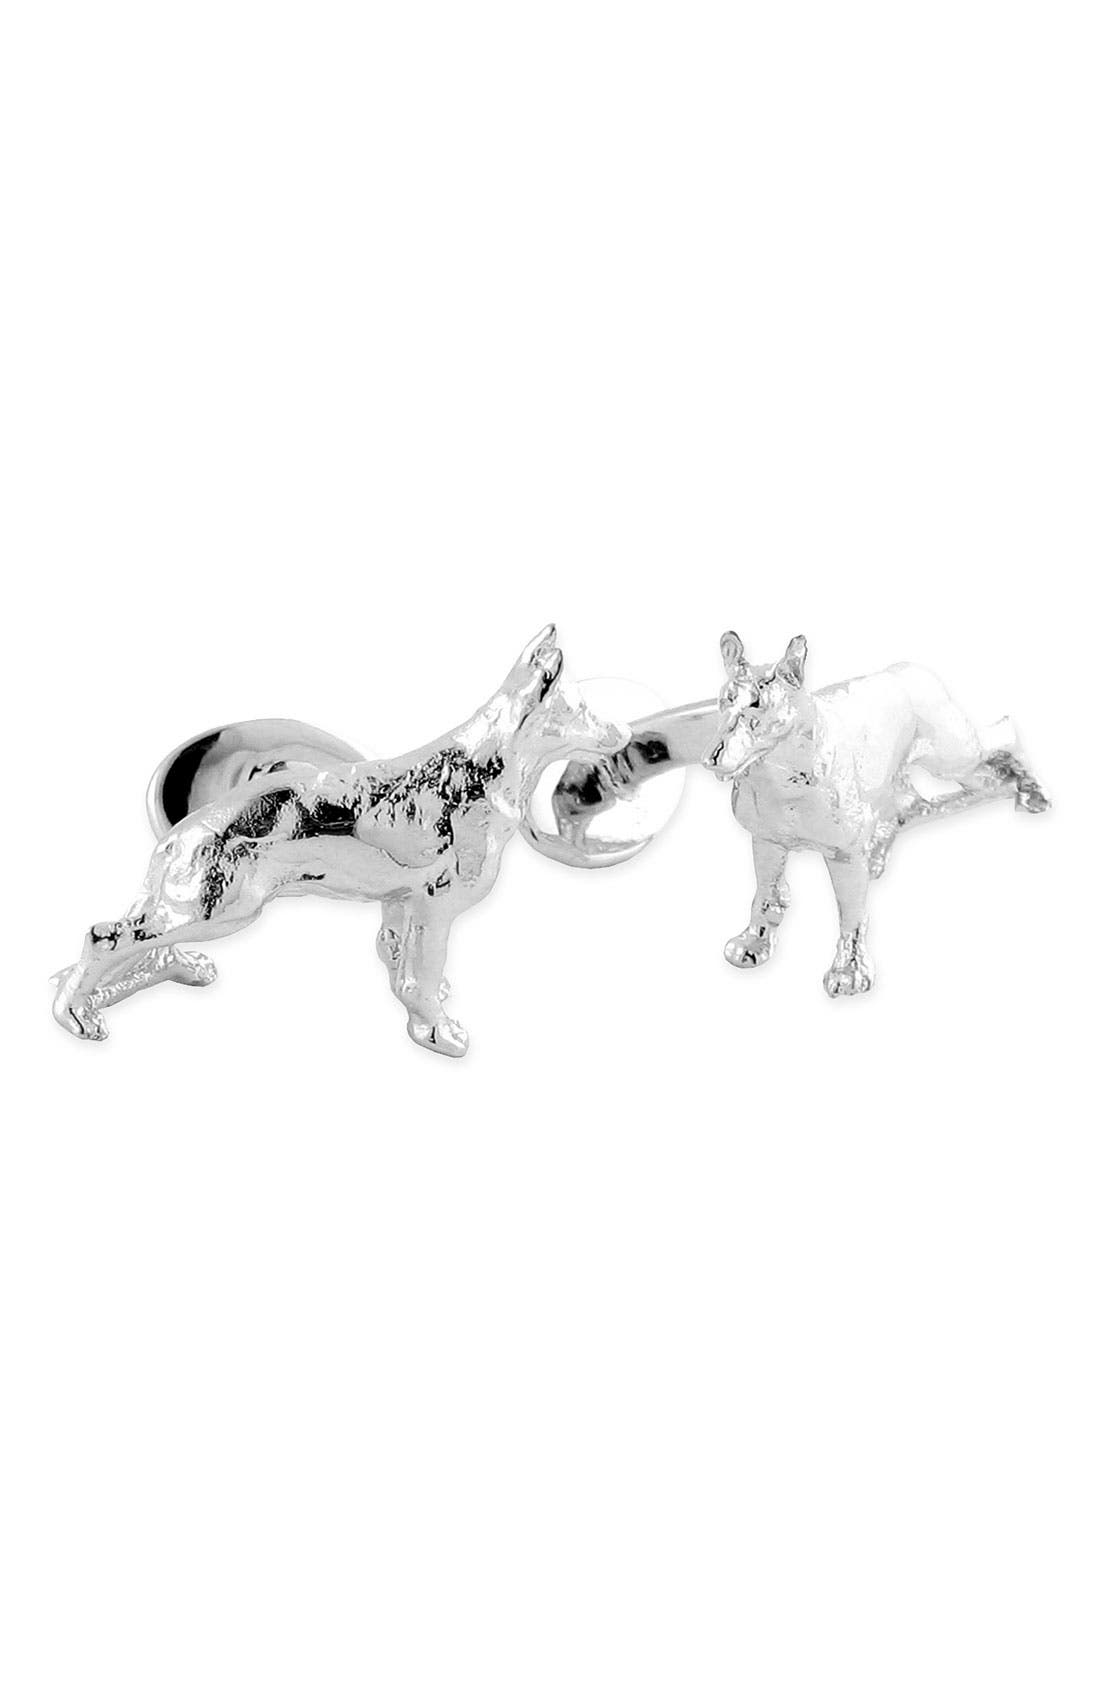 'German Shepherd' Sterling Silver Cuff Links,                             Main thumbnail 1, color,                             Silver